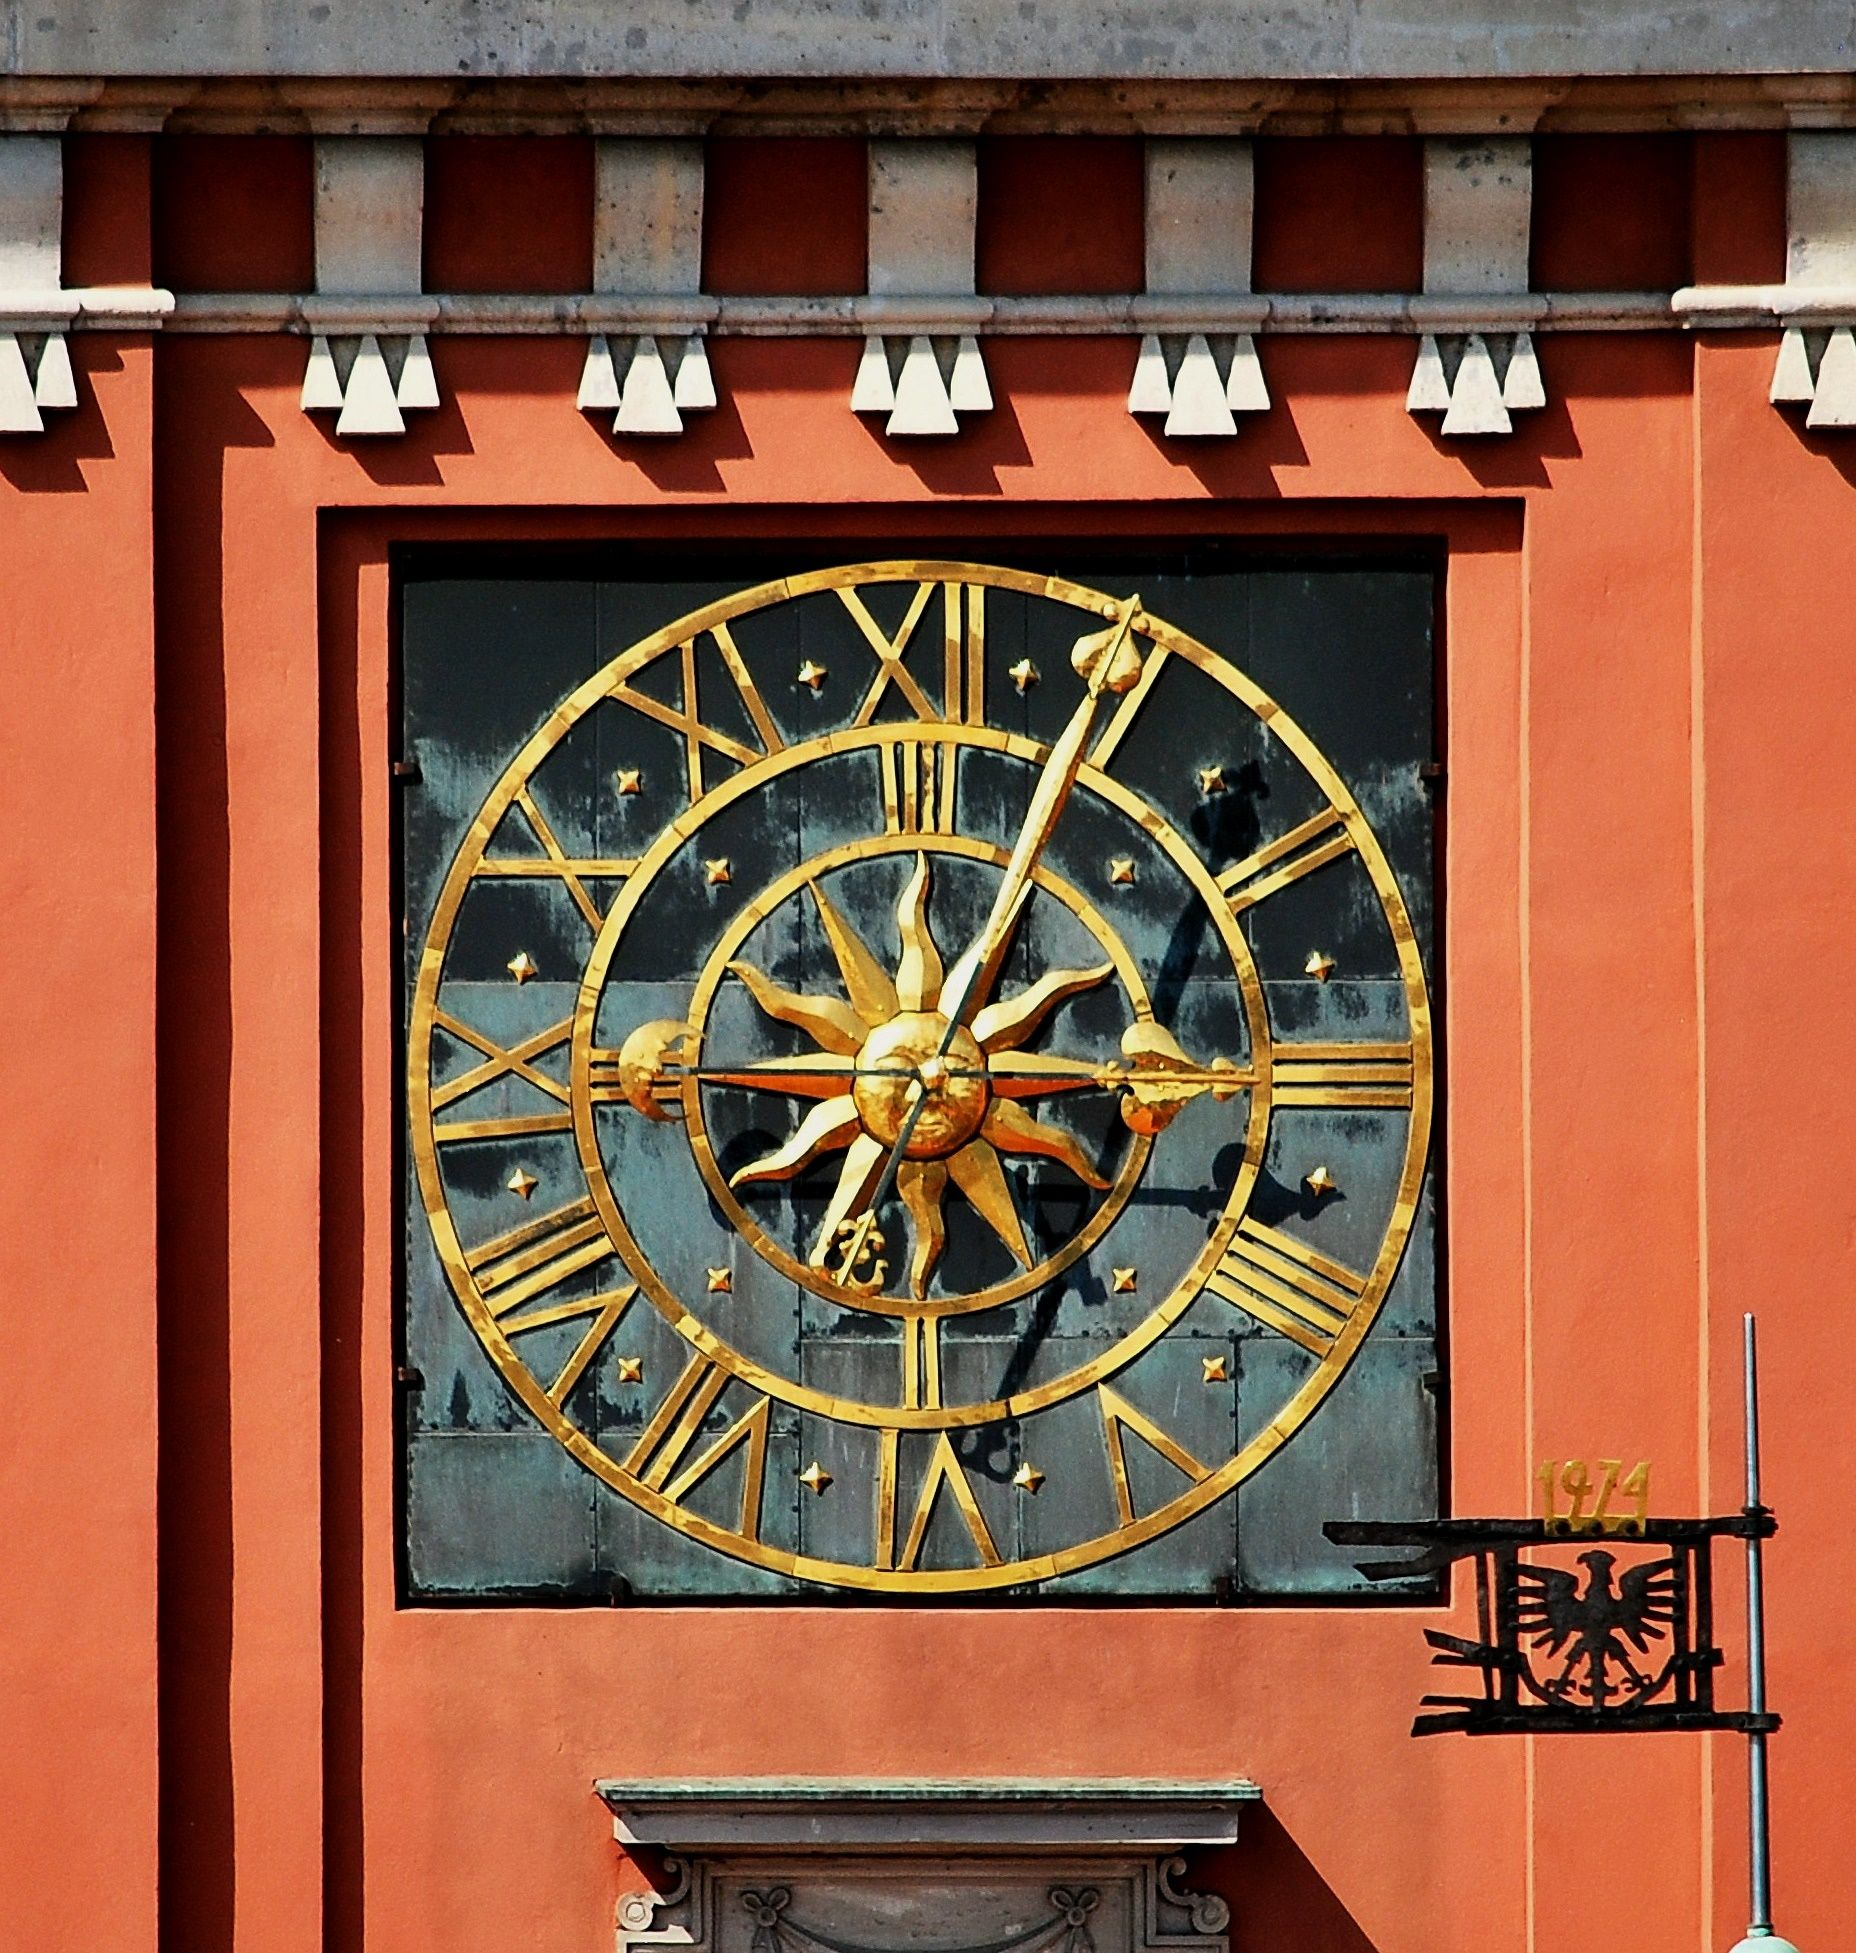 One of four clock faces of the clock in the so-called Sigismund's Tower (The New Royal Tower) of the Royal Castle in Warsaw, constructed for Sigismund III Vasa in 1622 by Gerardo Priami and Jan Sulej (mechanism) and Gerhard Benninck